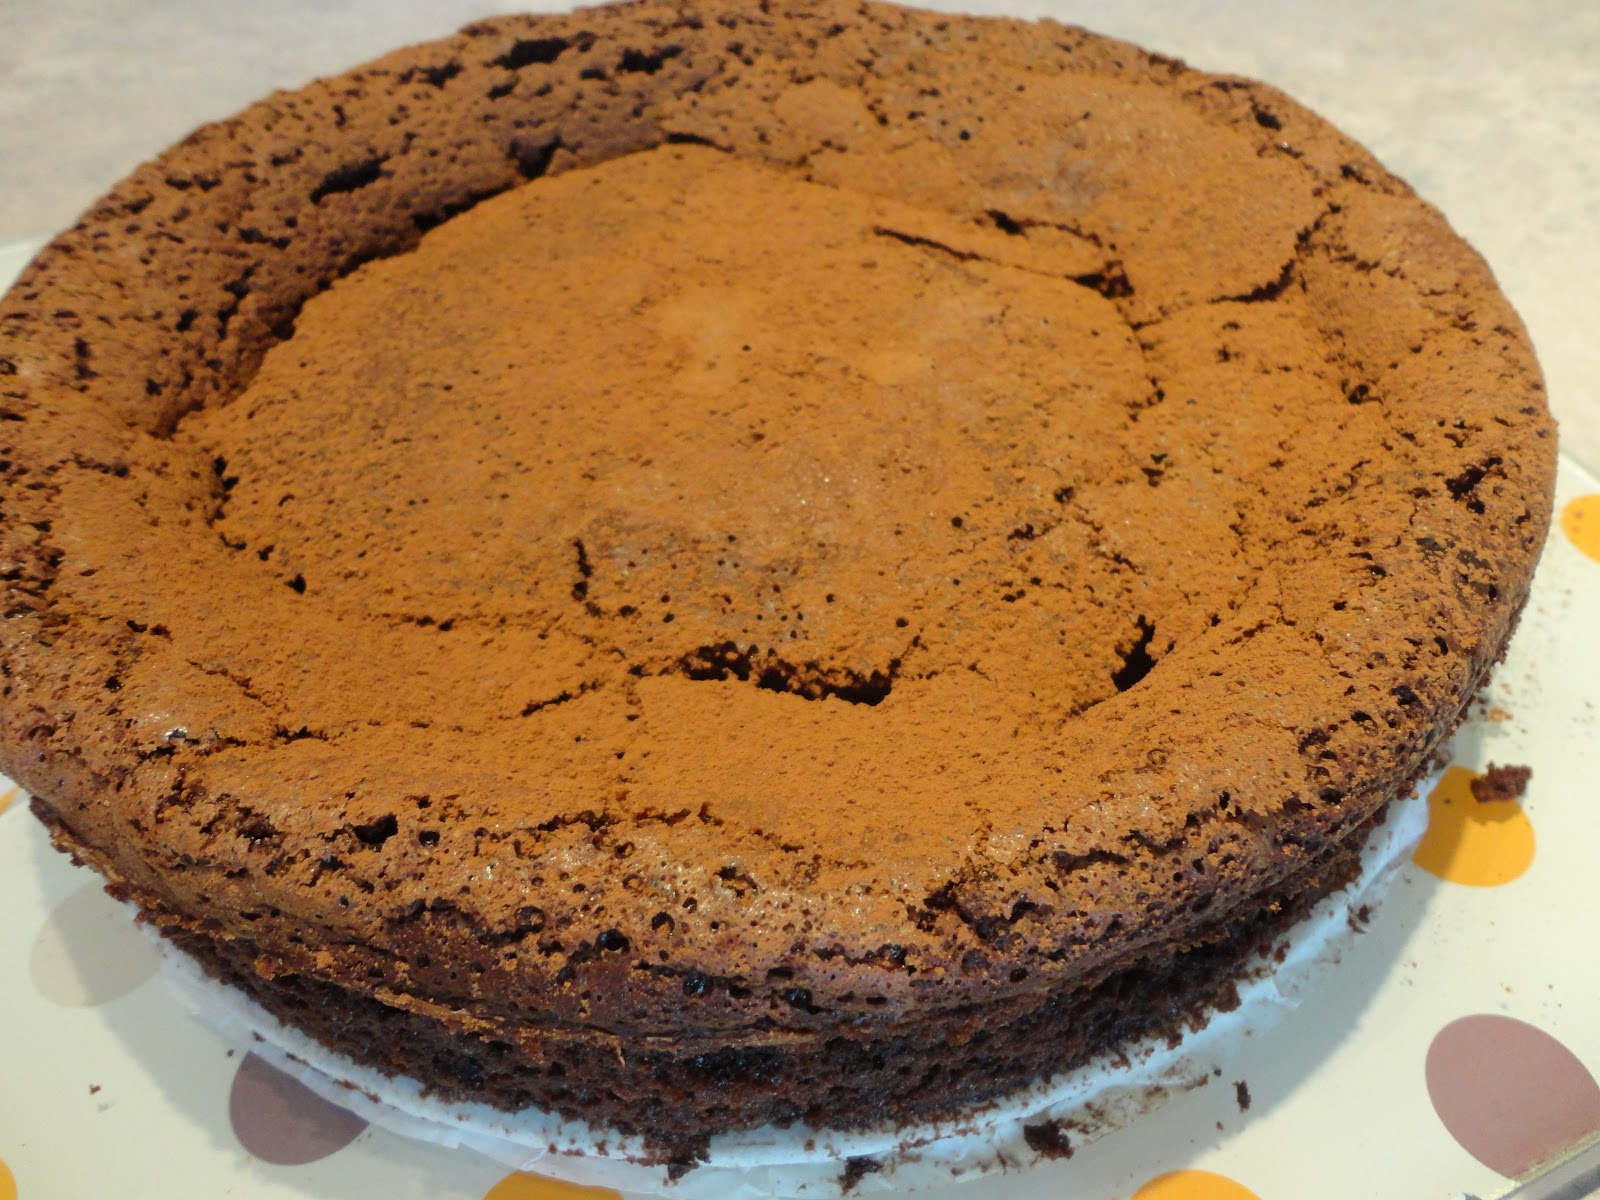 ... Delicious All That's Gluten Free: Karina's Chocolate Truffle Cake